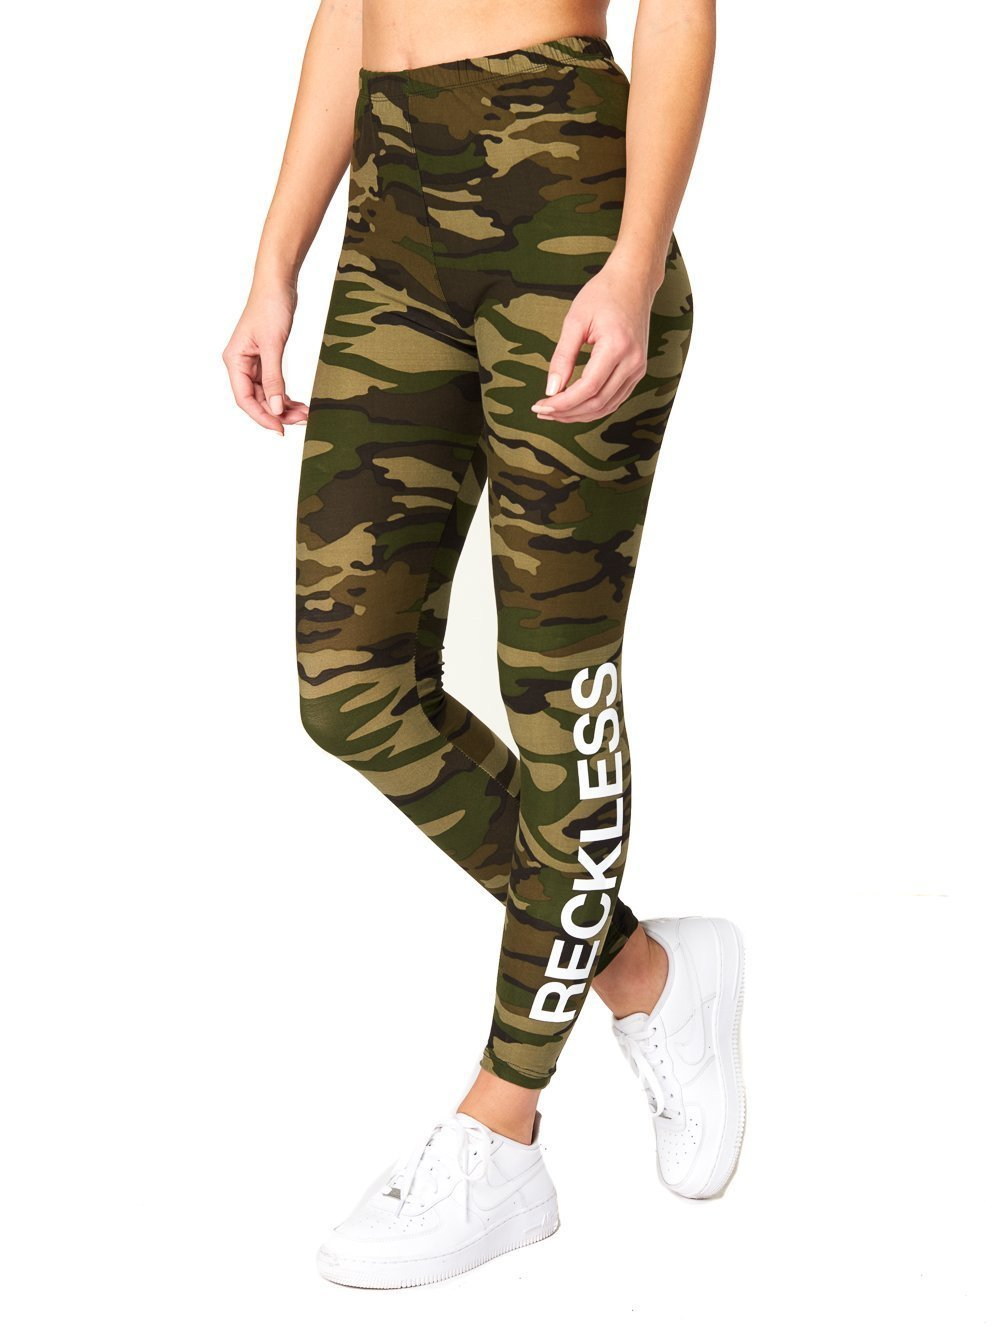 Young Reckless - Romy Leggings - Camo - ONE Size - Womens - Activewear - Leggings - CAMO